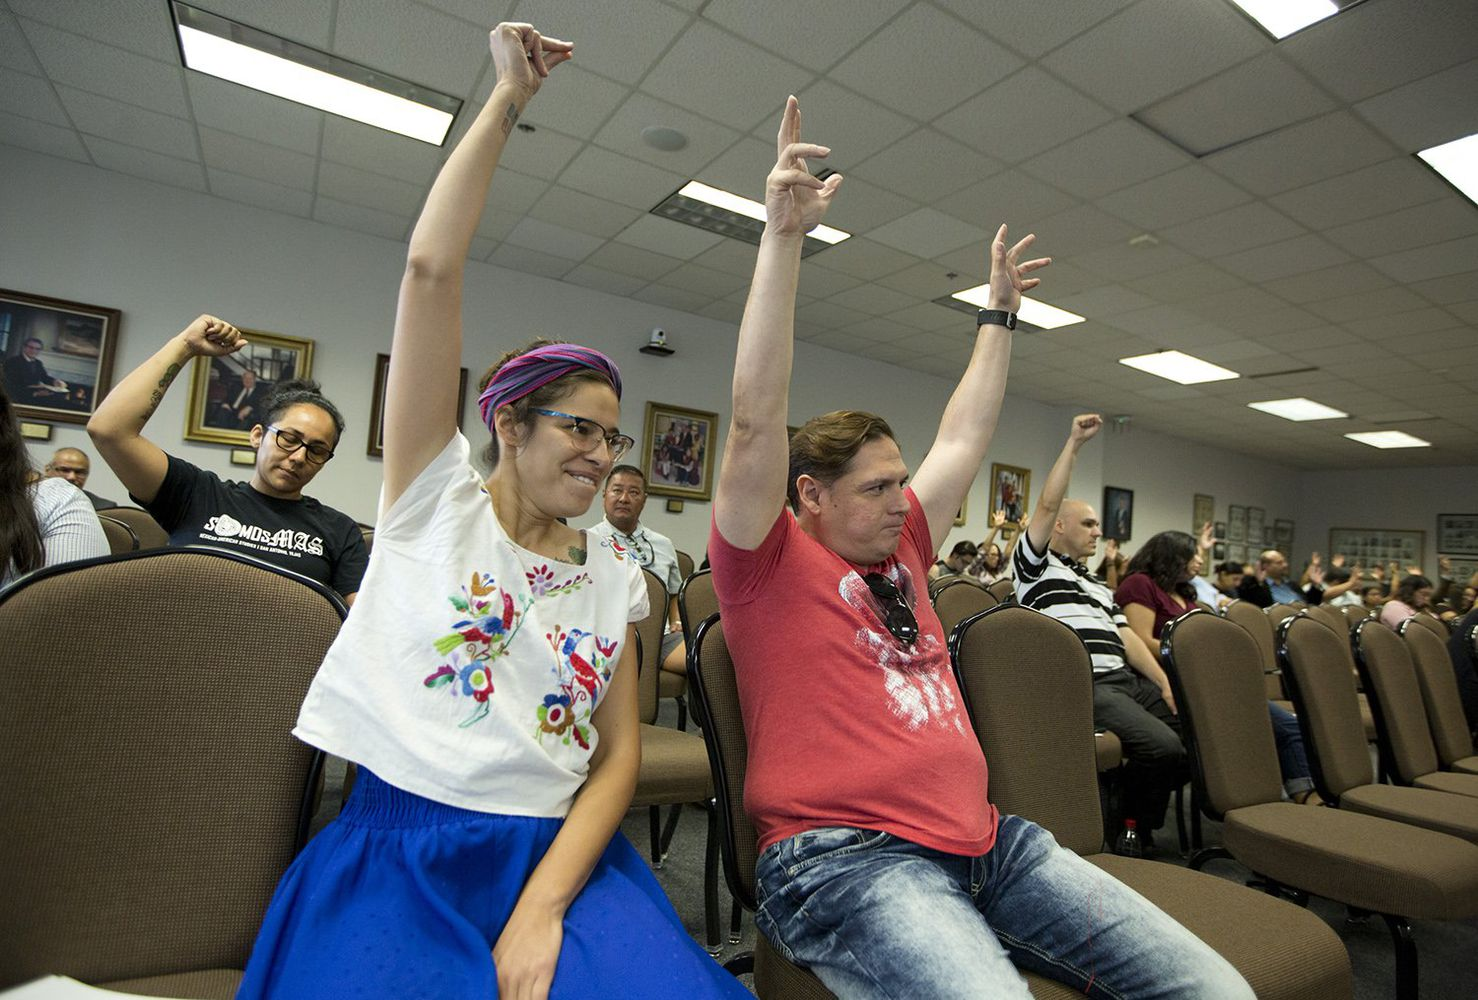 """Devyn Gonzales and Gilberto Sanchez raise their arms in support of changing the name of a new course on Mexican-American history to """"Mexican-American Studies"""" at a State Board of Education hearing on Tuesday."""